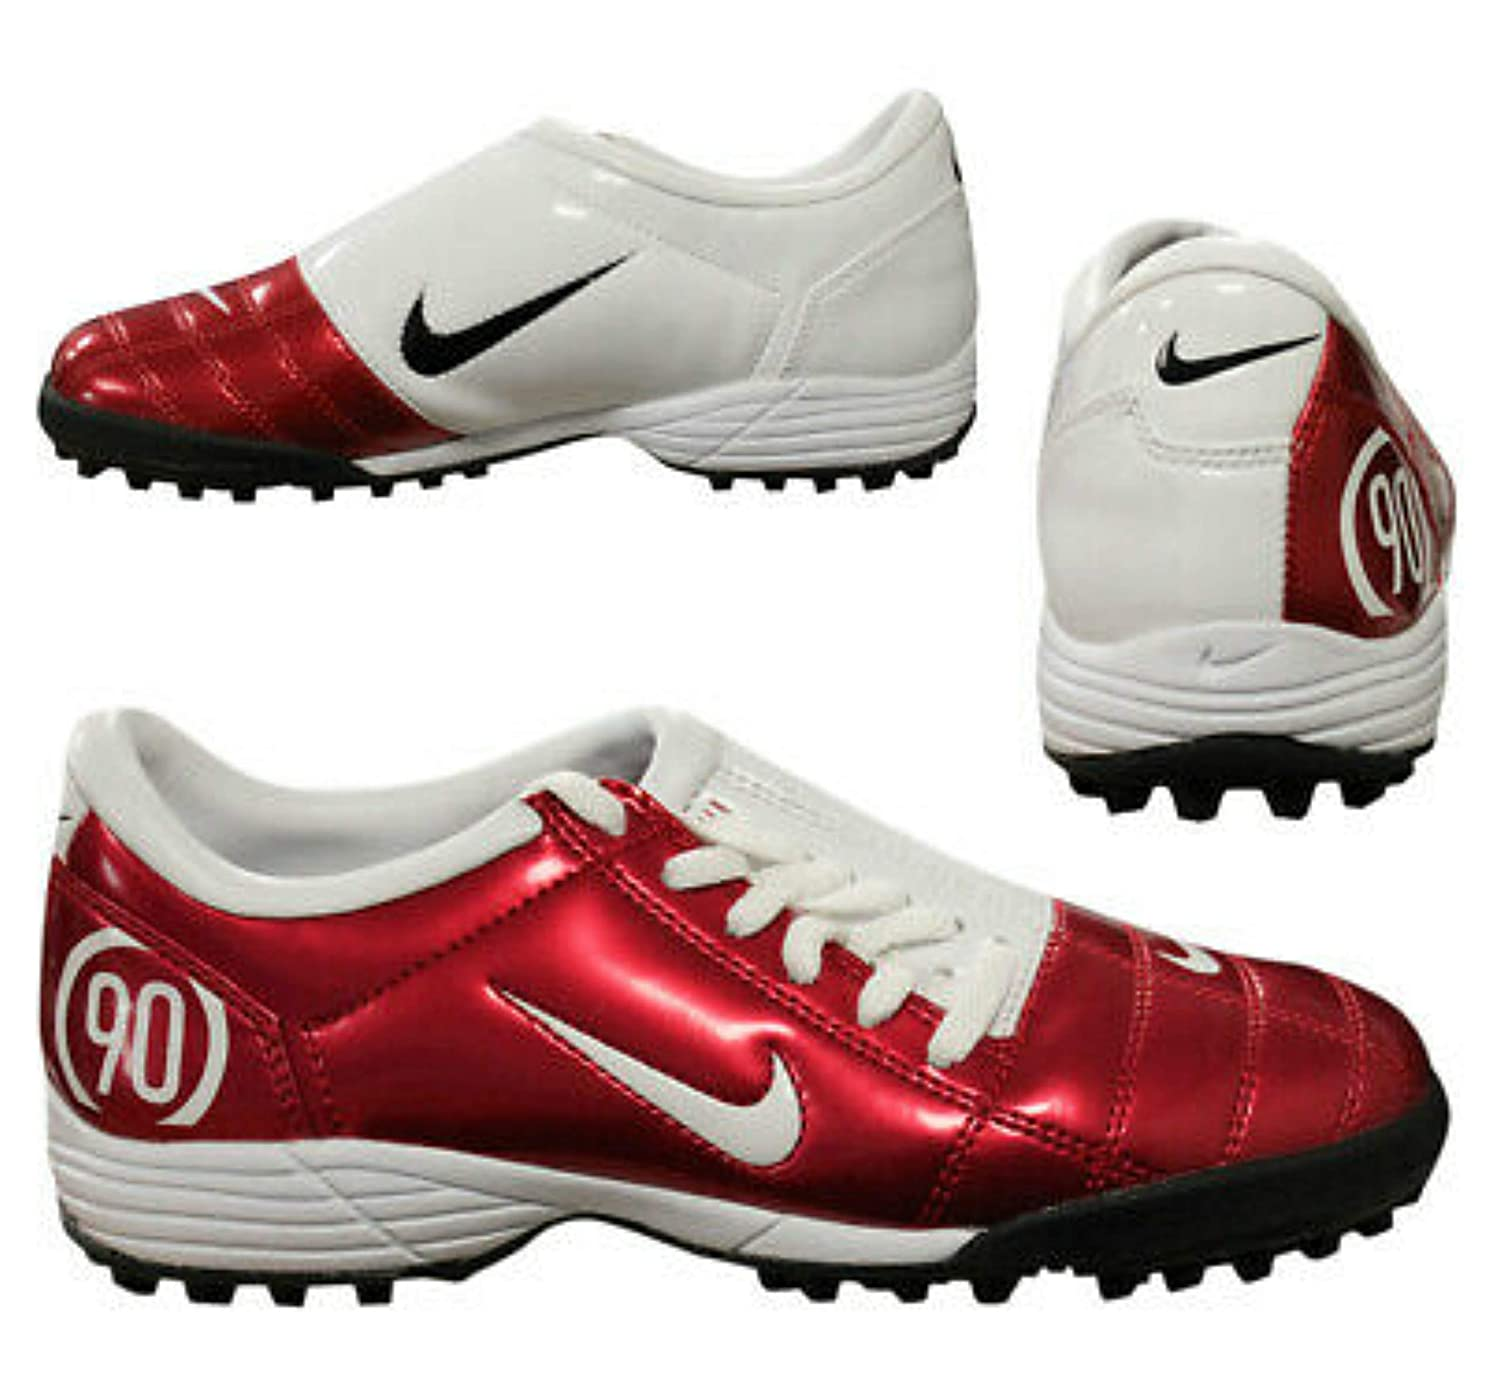 7b570b0c901ed Nike Total 90 III TF Plus Astro Turf Trainers Shoes Boots Comet  Red White-Black Men s UK 10.5